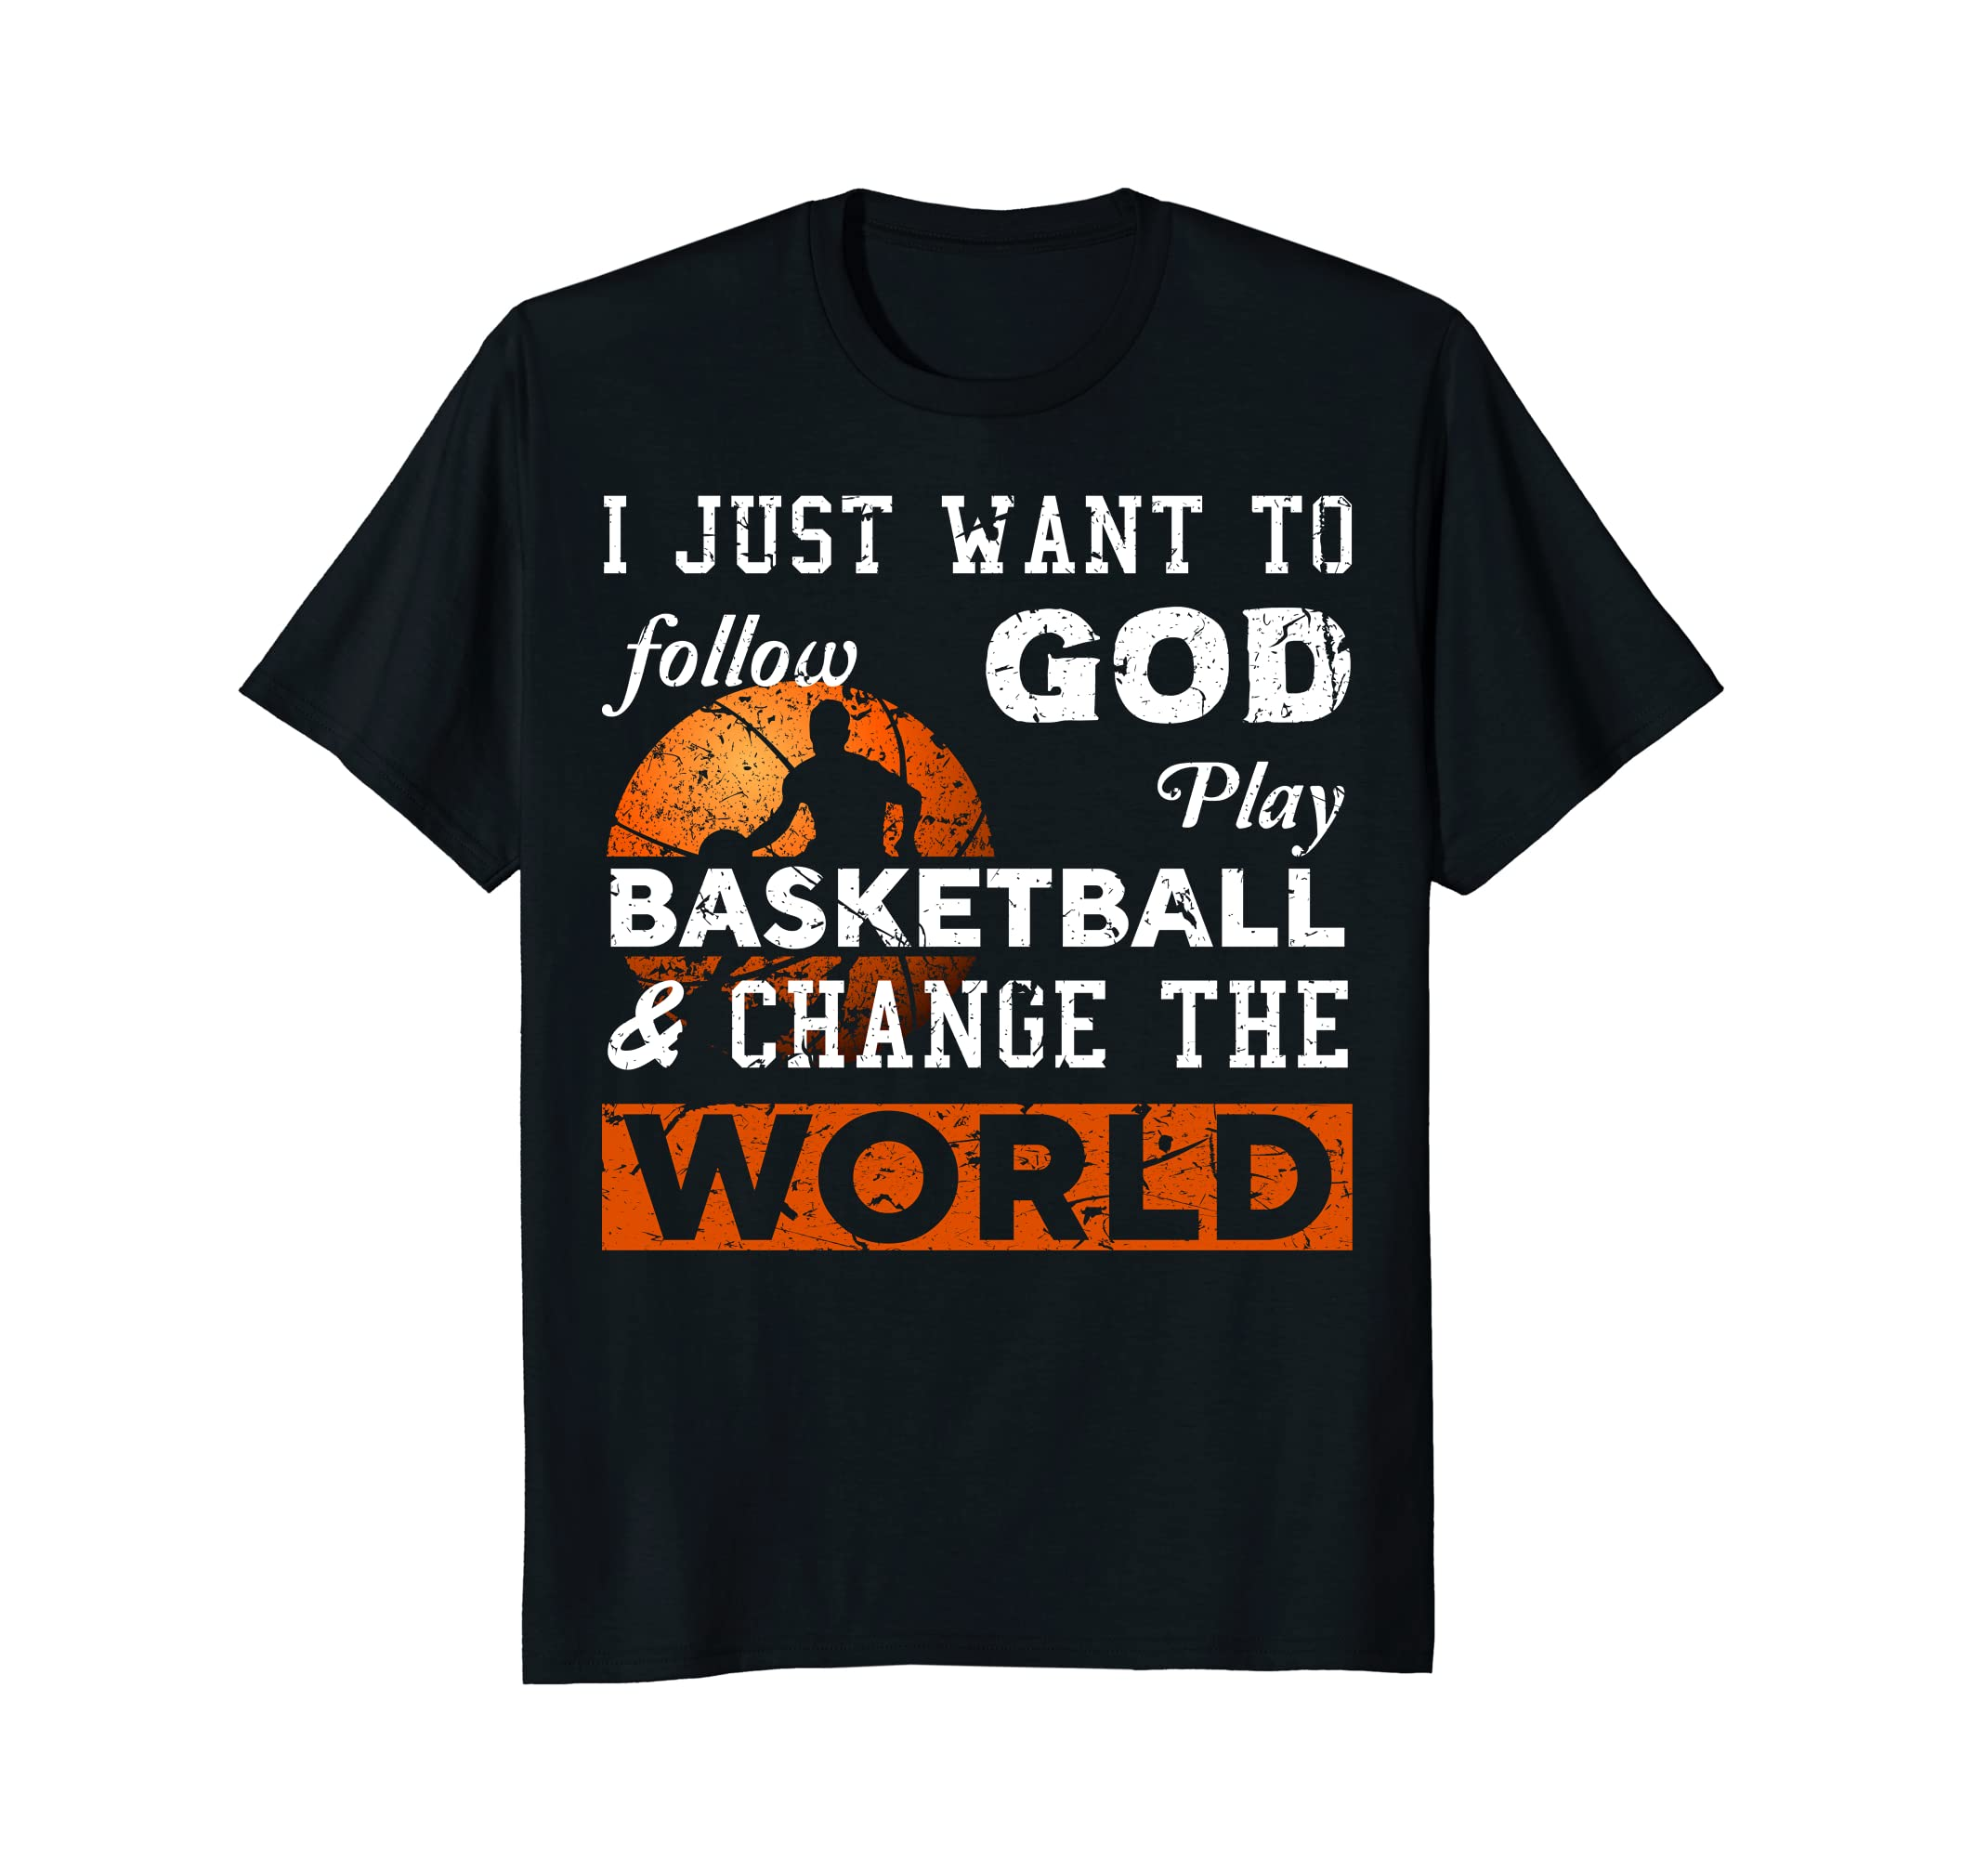 Play Basketball And Change The World Funny T-shirt